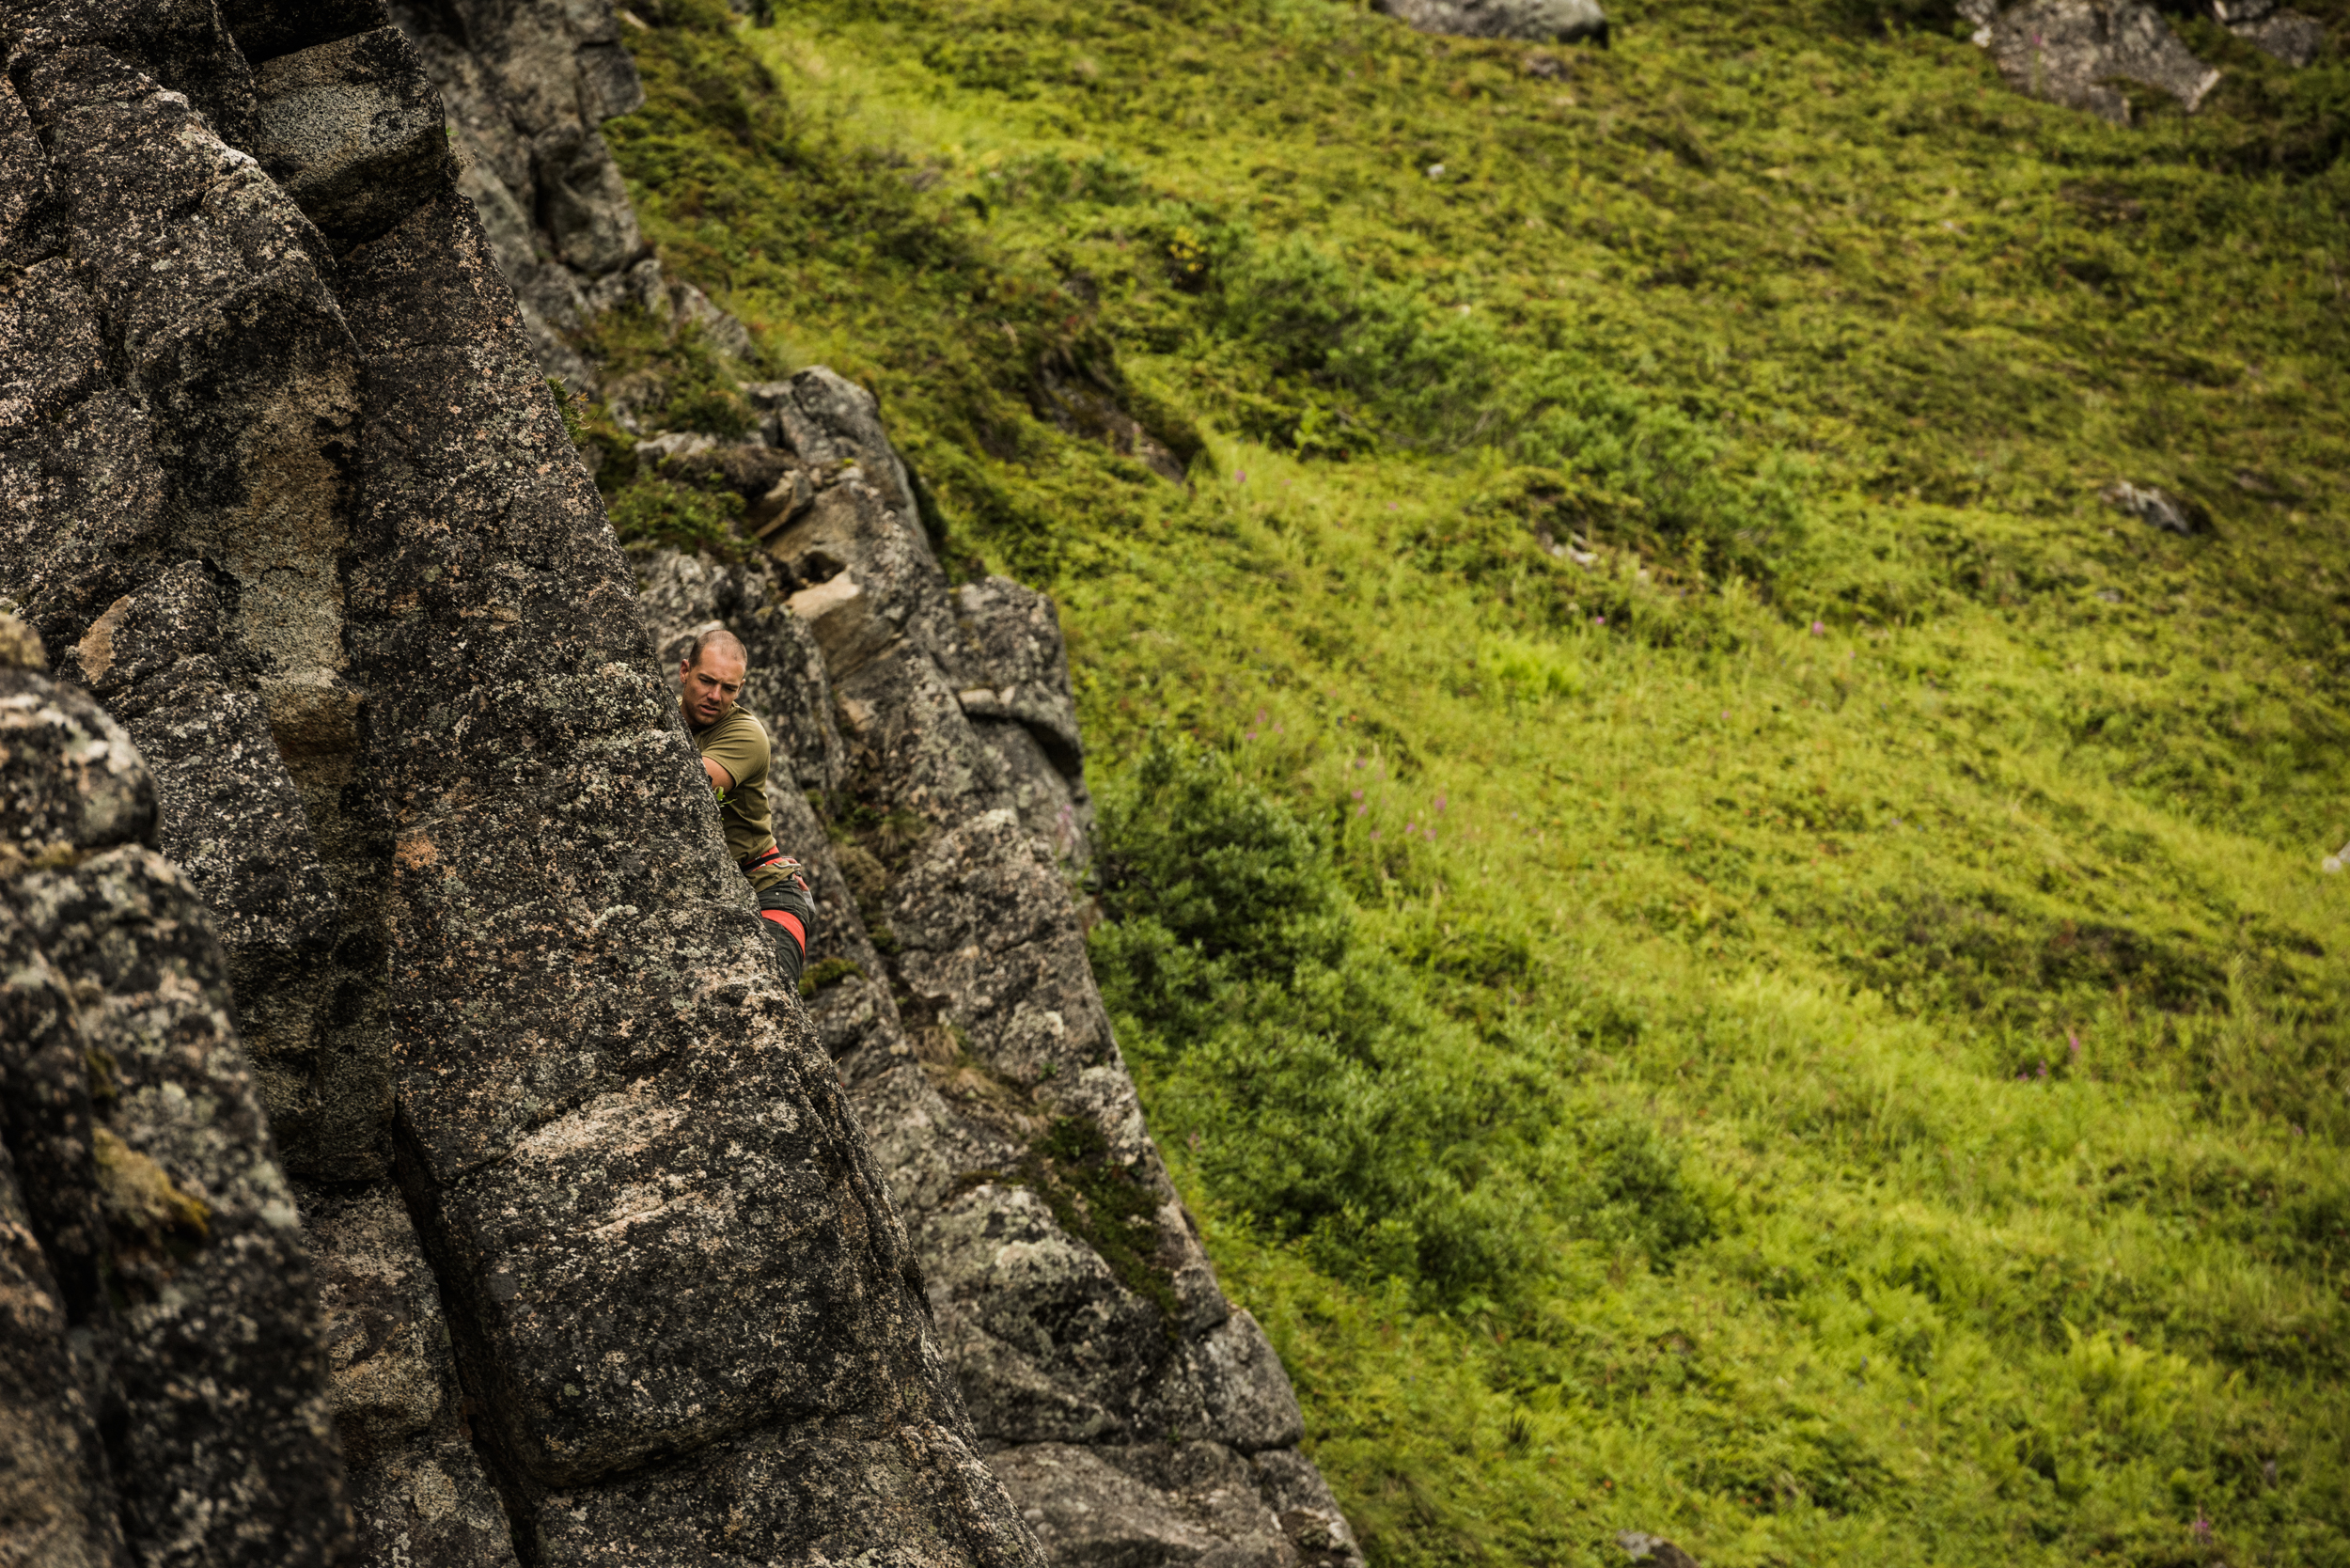 TaraShupe_Photography_Alaska_RockClimbing_HatchersPass_Travel_Photographer_Women_Adventure_036.jpg